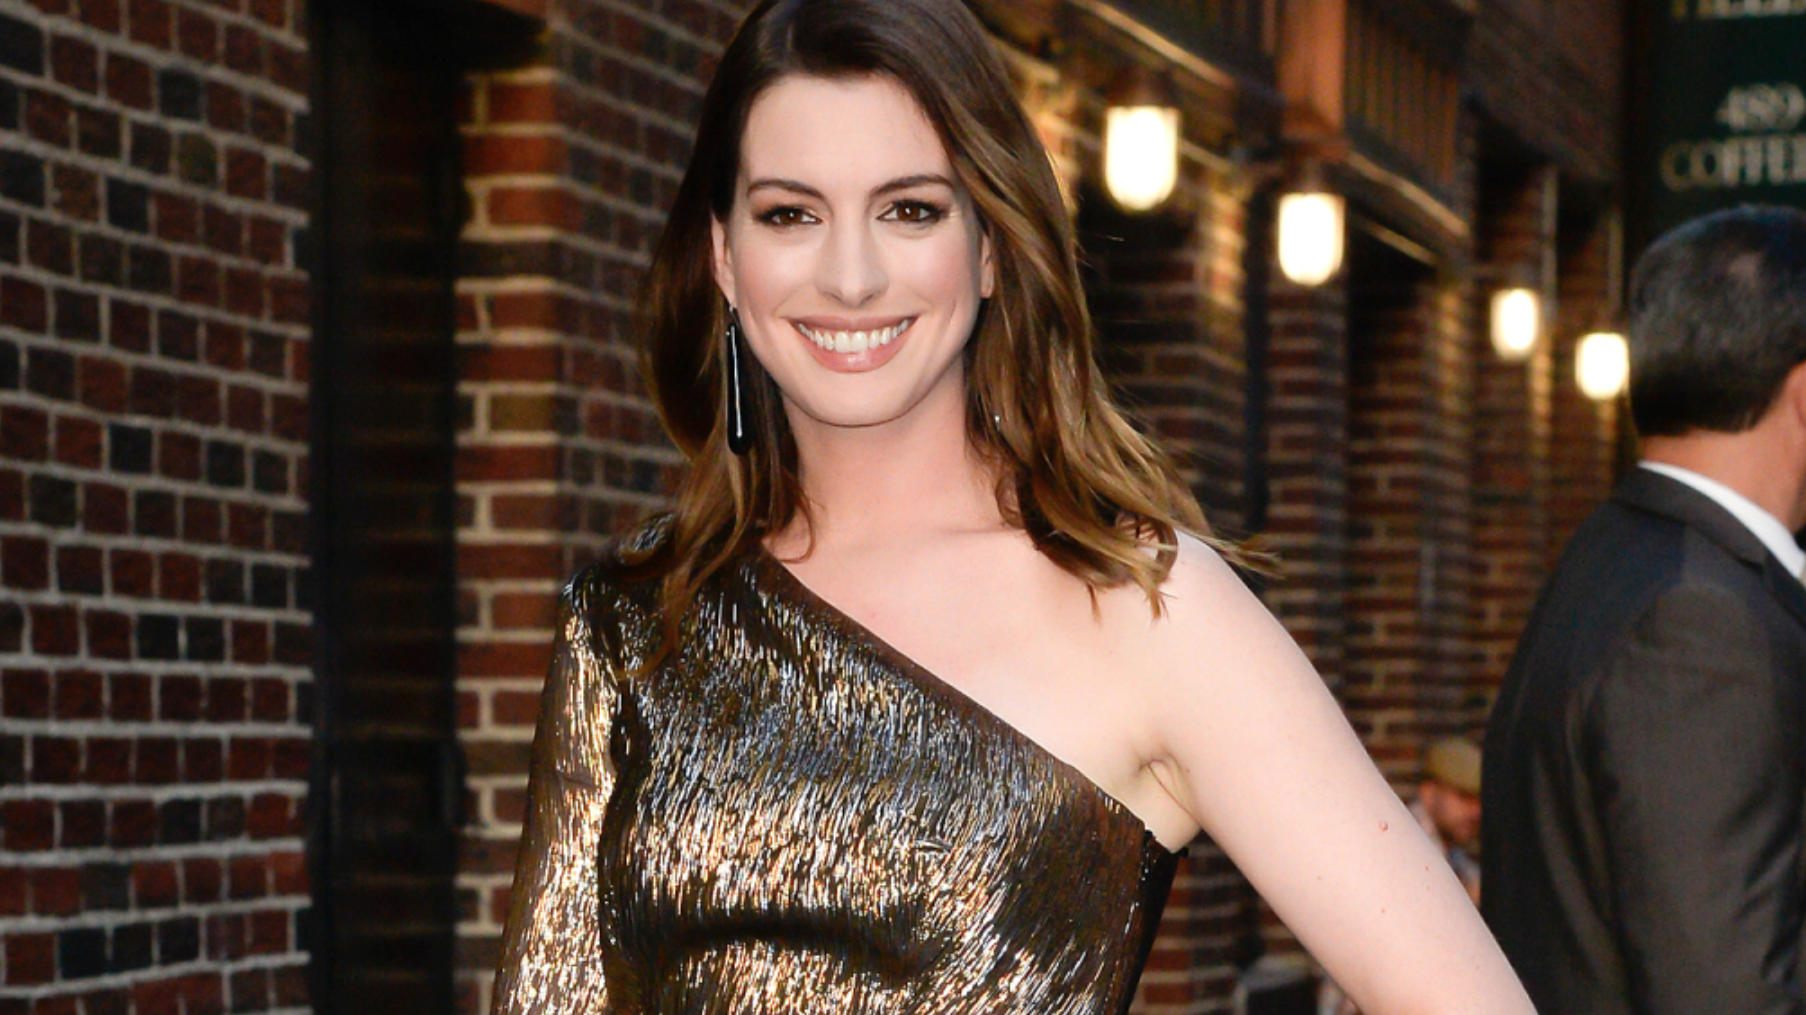 Anne Hathaway Felt Compelled to Explain Her Weight Gain to Avoid 'Pregnancy Rumors'